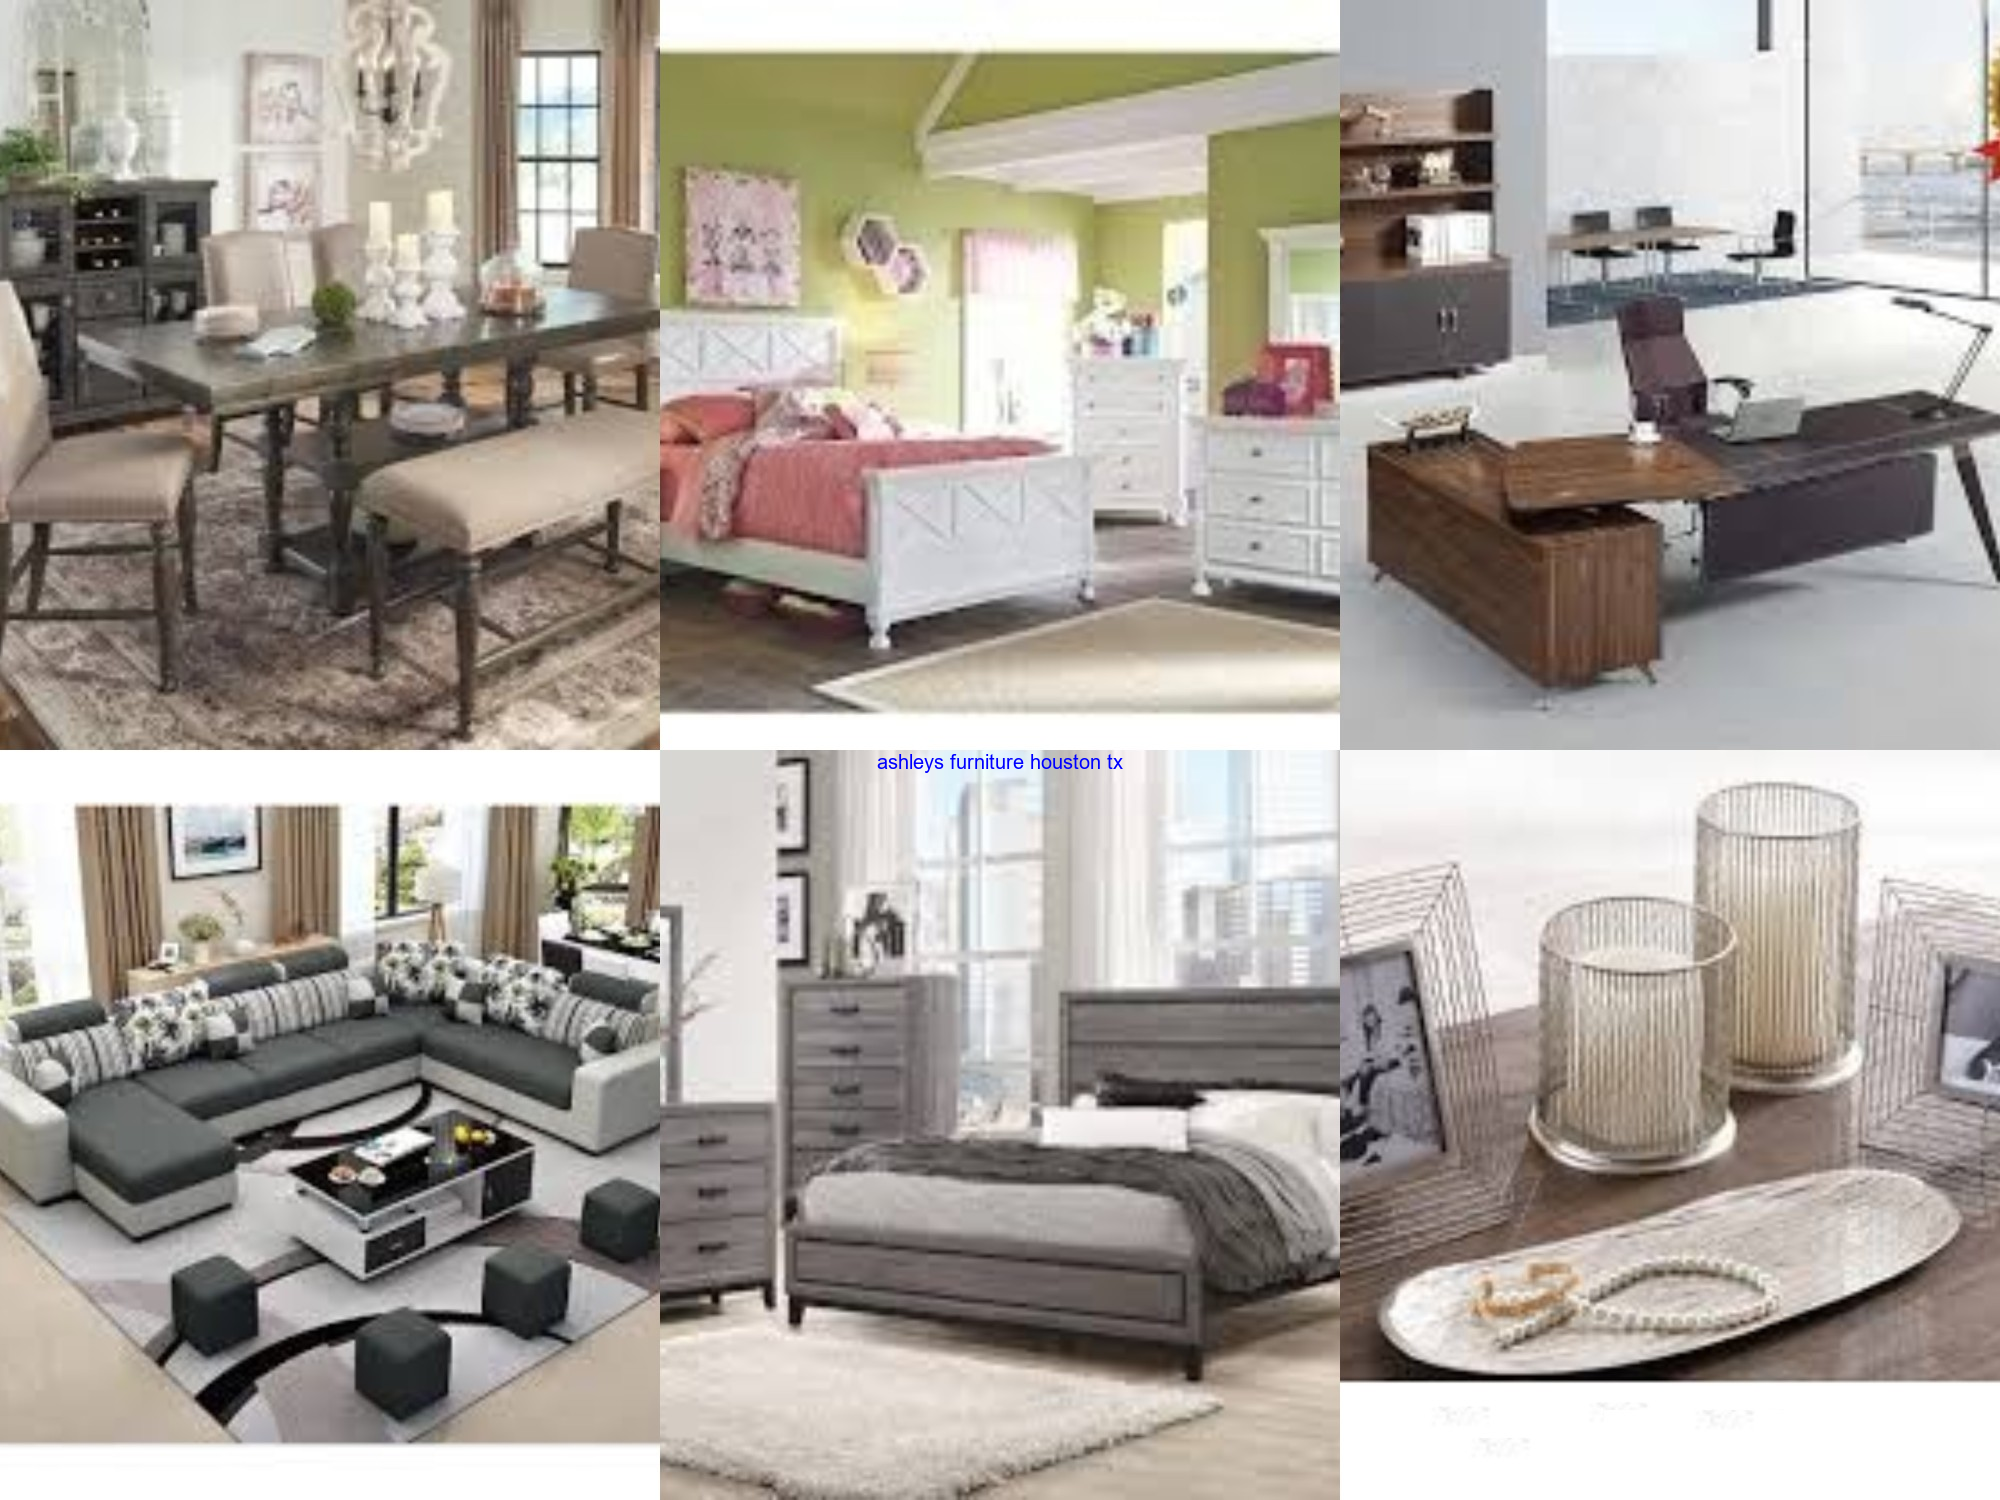 Ashleys Furniture Houston Tx I Suggest One To Try This Web Site